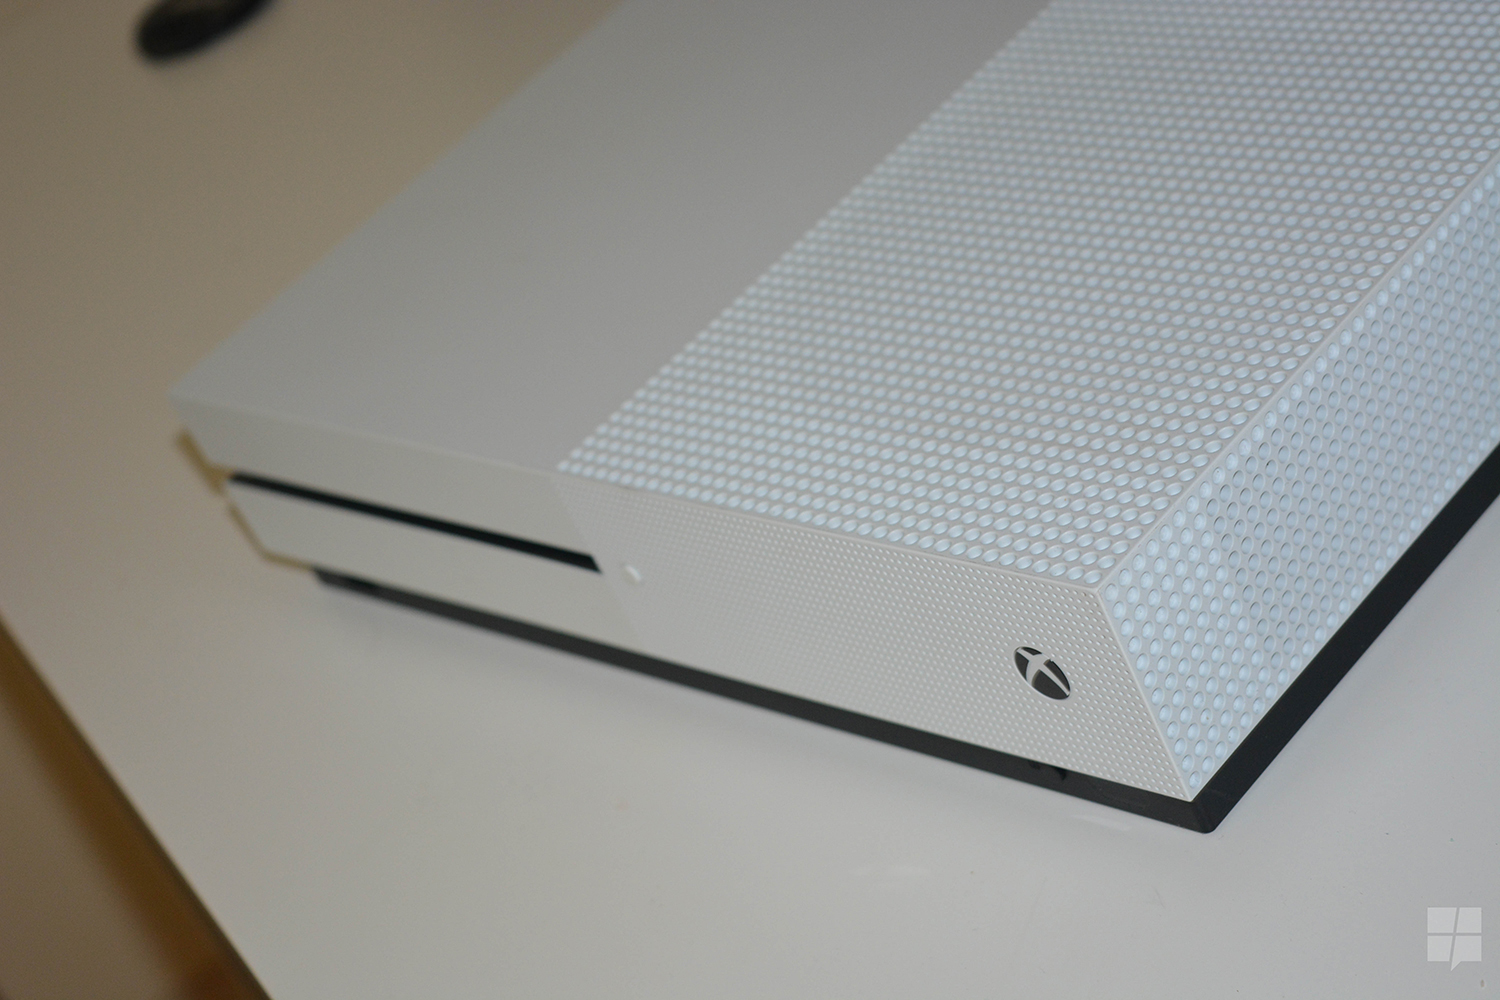 Review: Xbox One S — After a month - MSPoweruser